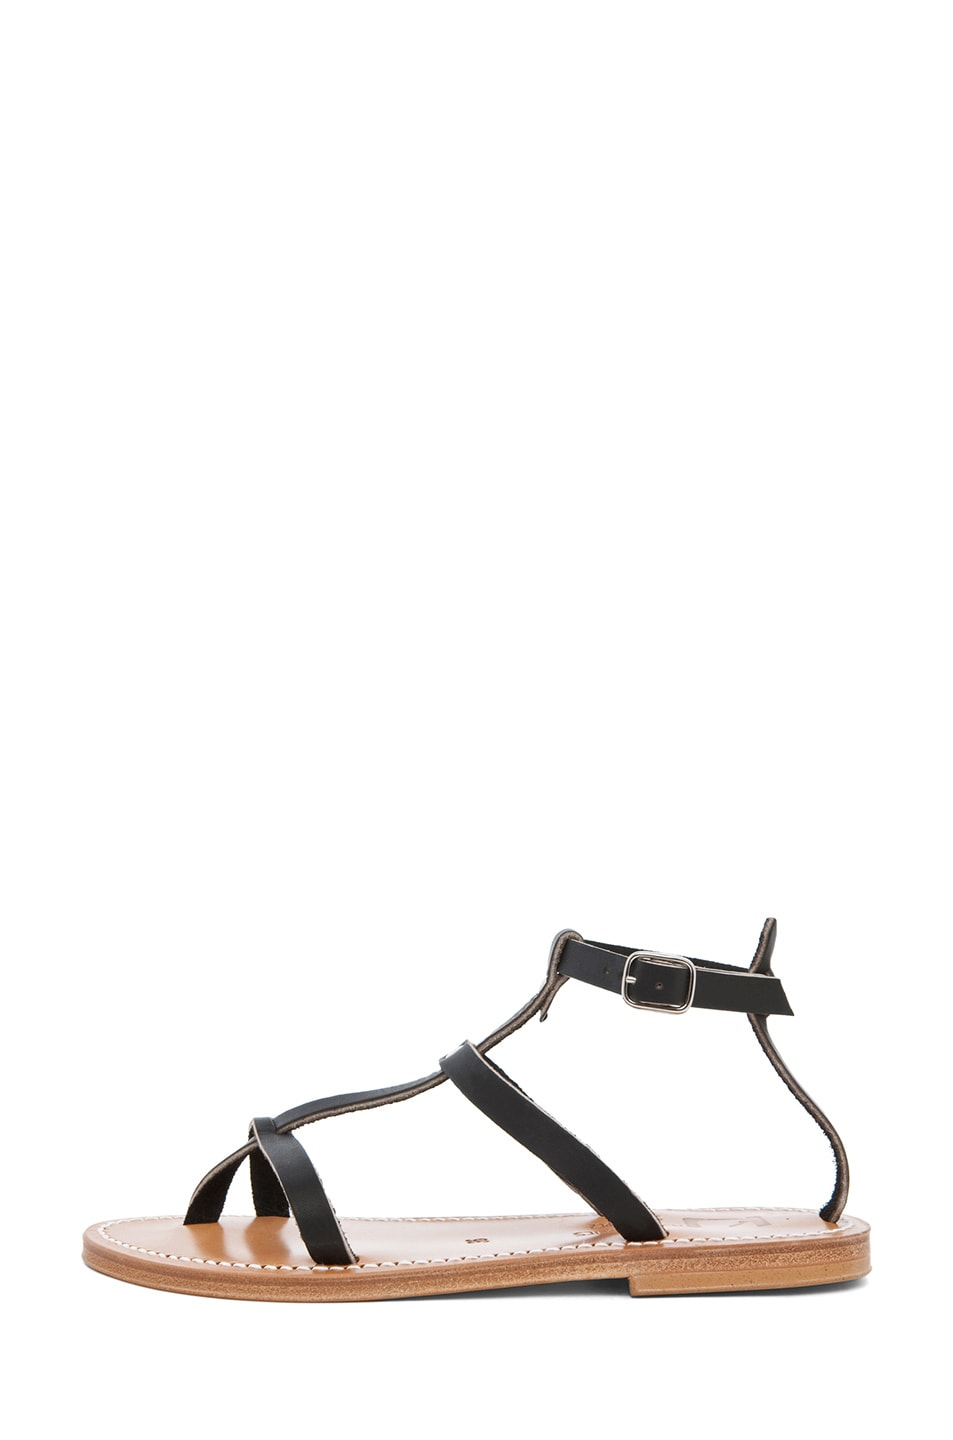 Image 1 of K Jacques Gina Gladiator Sandal in Black